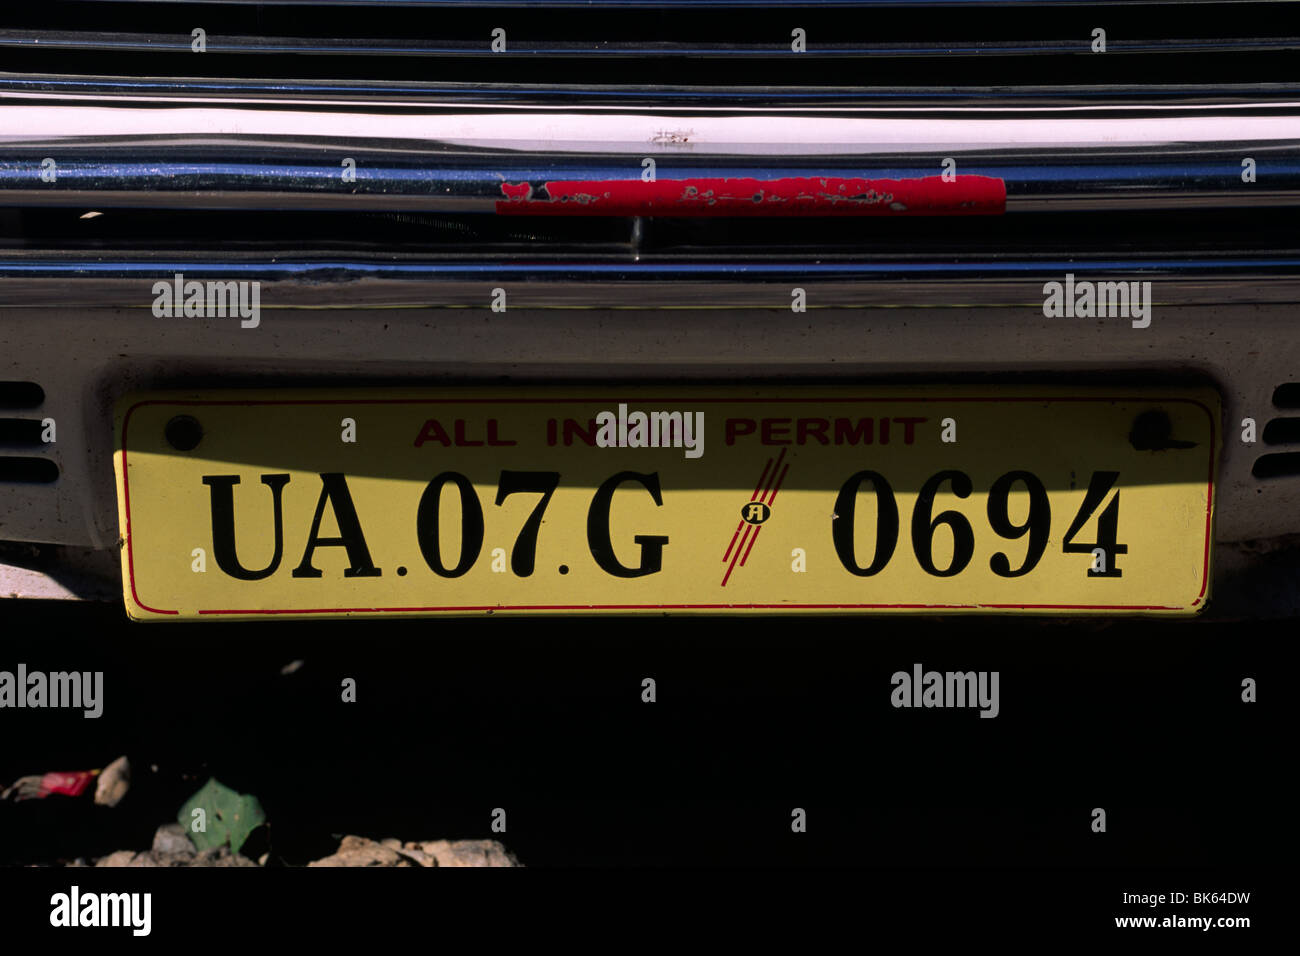 india, uttarakhand, rishikesh, car plate close up - Stock Image